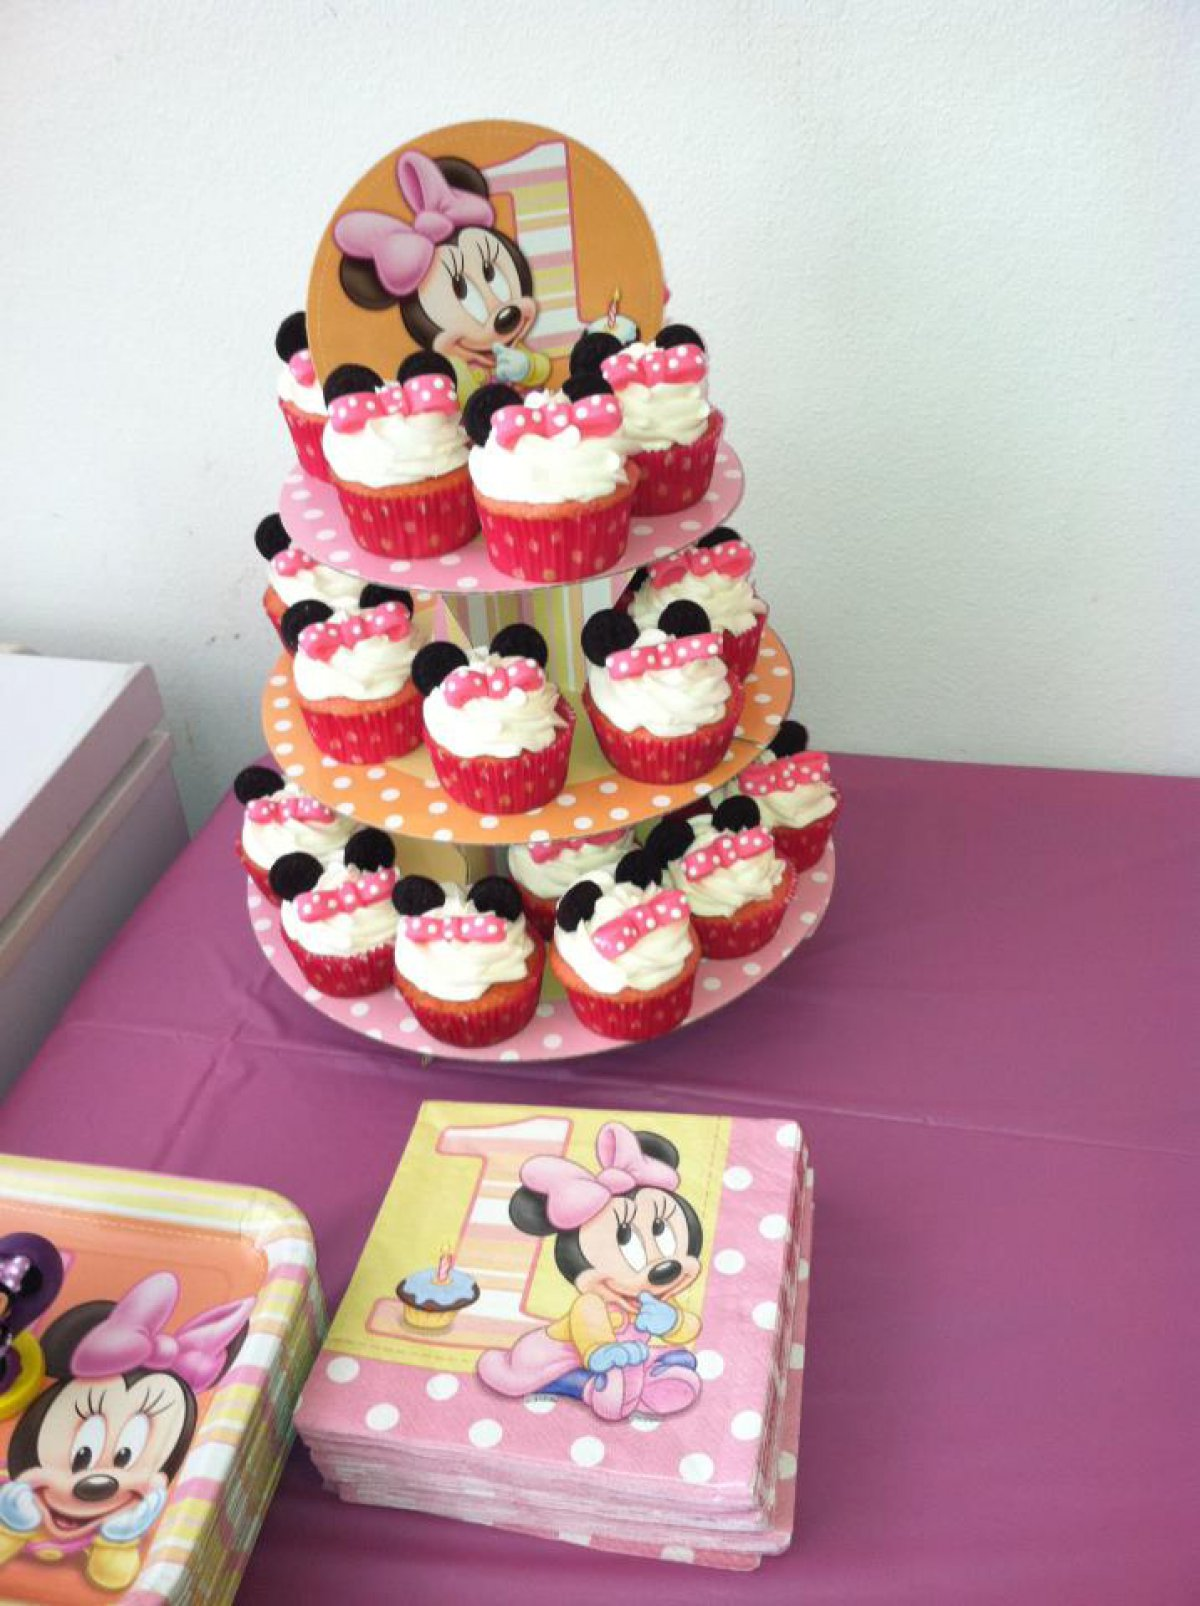 Minnie Mouse Cupcakes for 1st Birthday cake Cake Theater